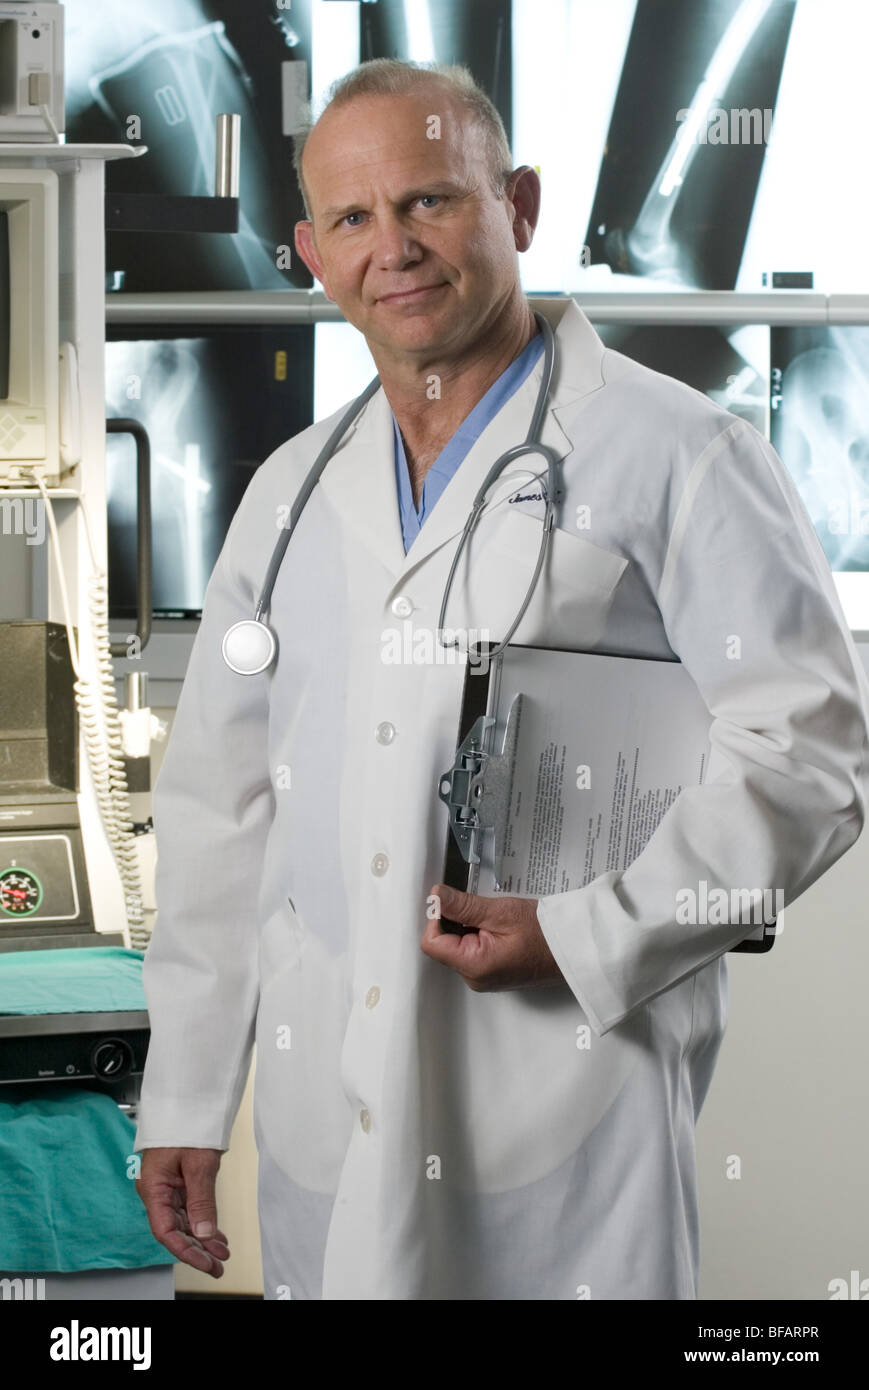 Doctor studio background, portrait, direct to camera - Stock Image